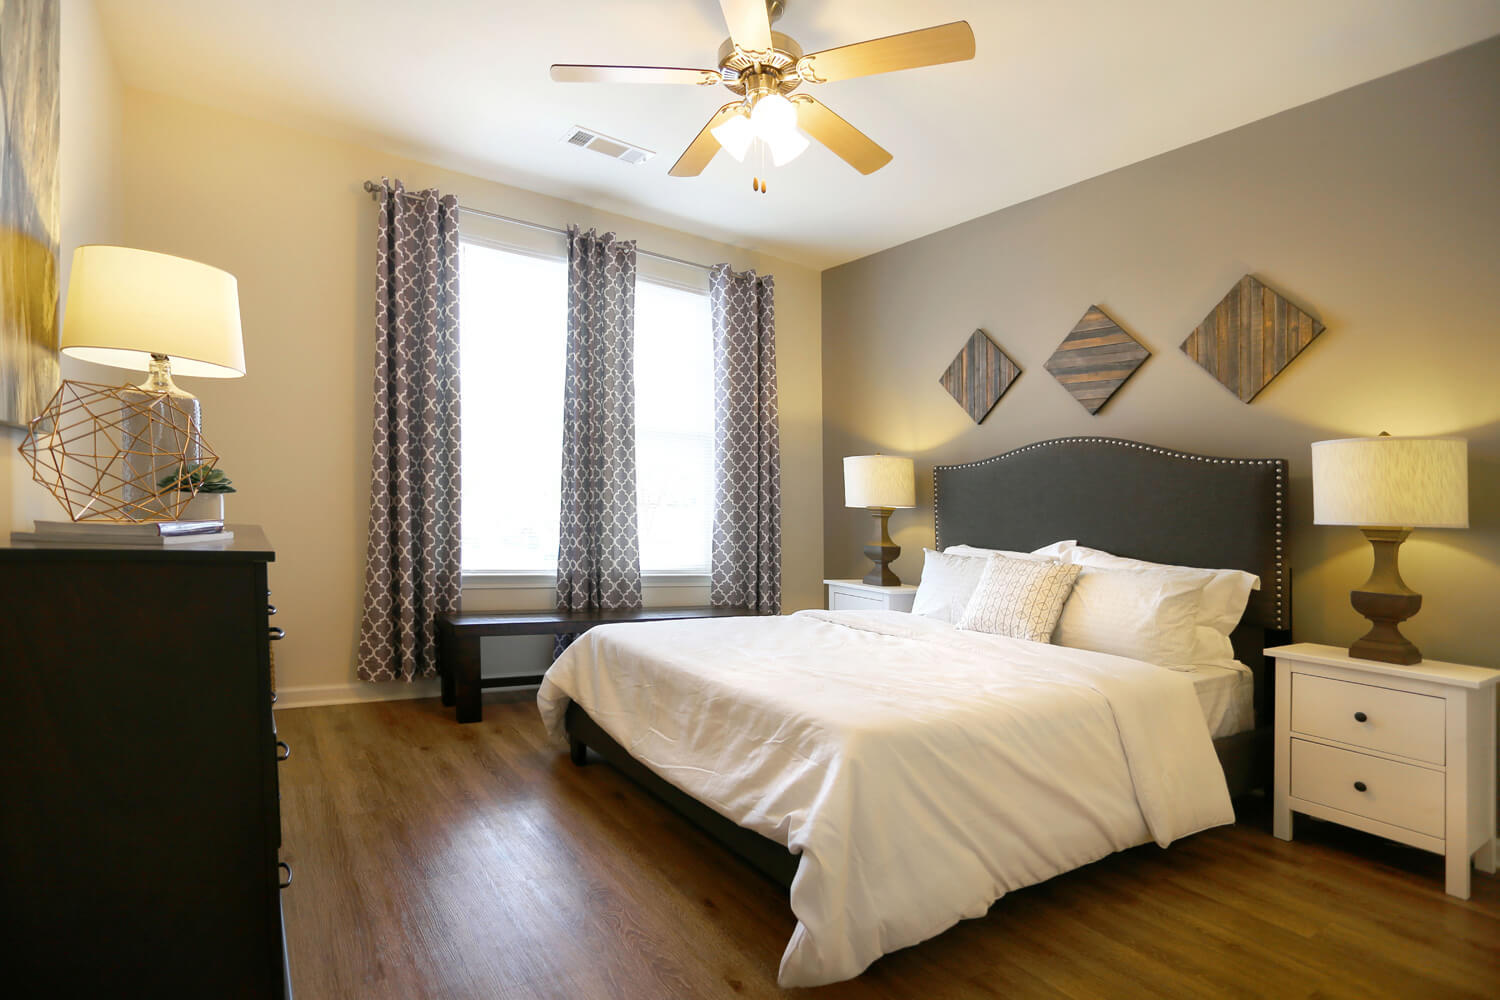 The Morgan Apartments Designed by Foshee Architecture - View of Master Bedroom